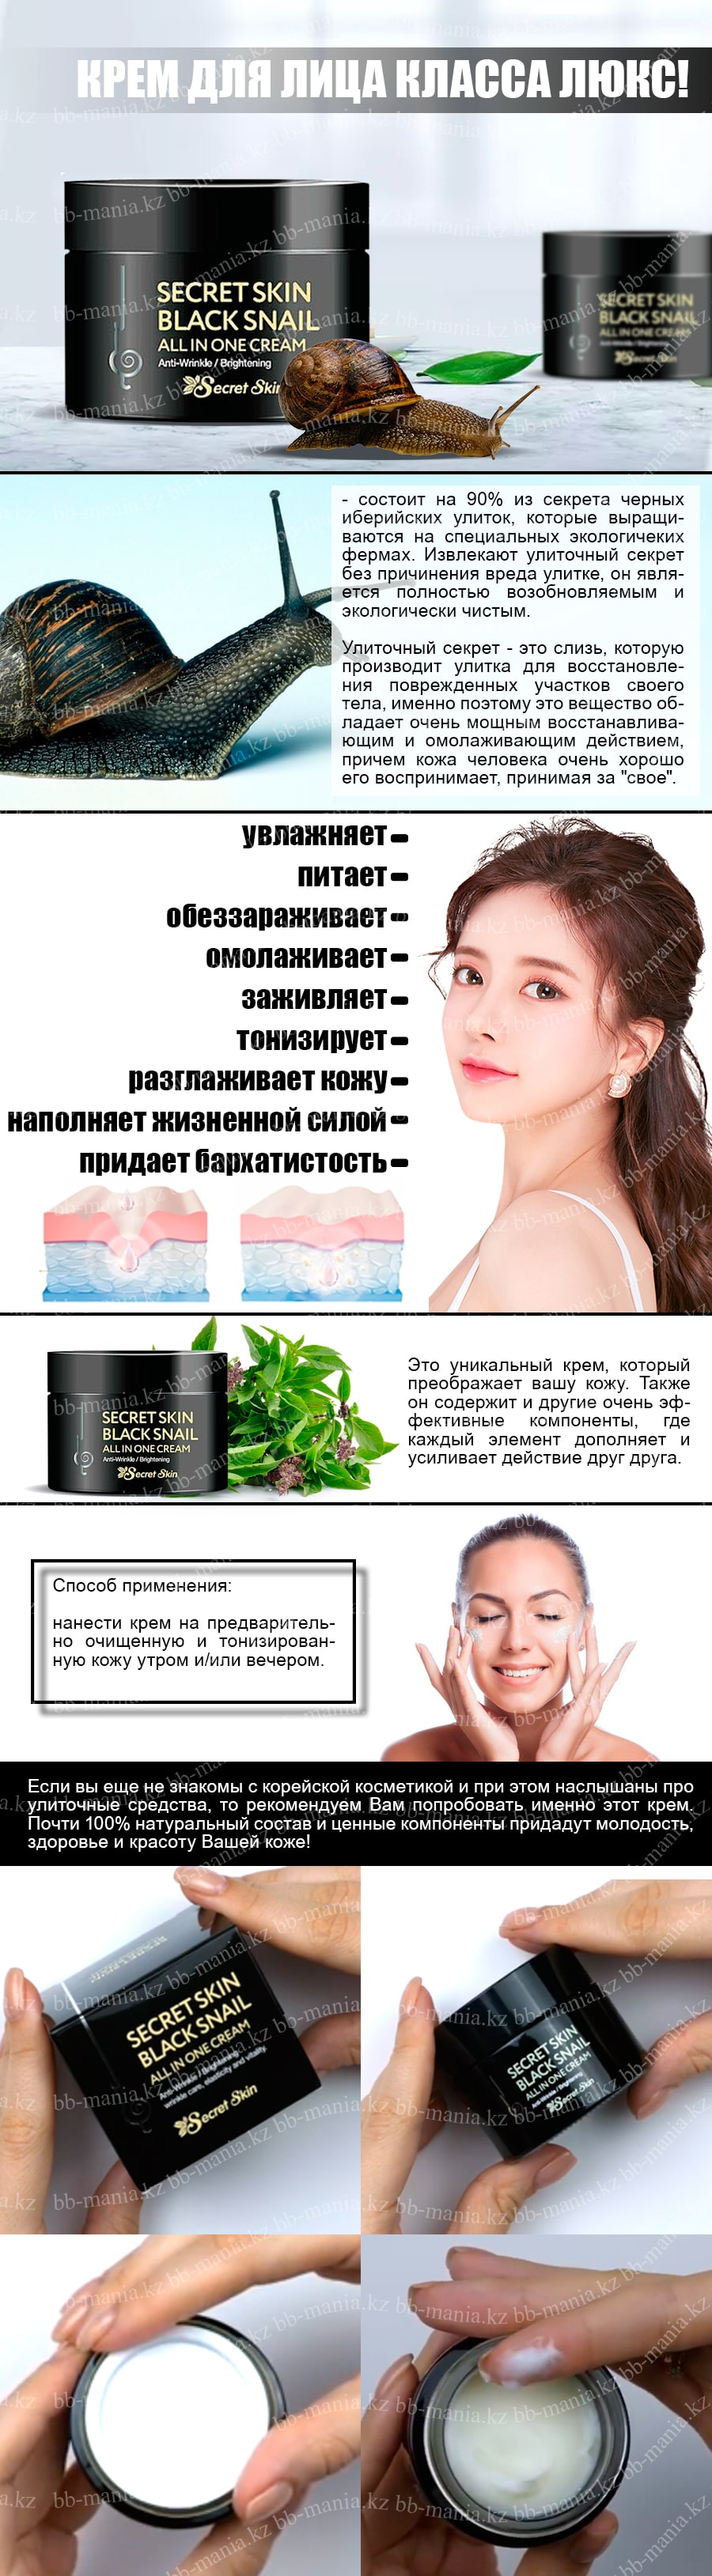 Black-Snail-All-In-One-Cream-[SECRET-SKIN]-min